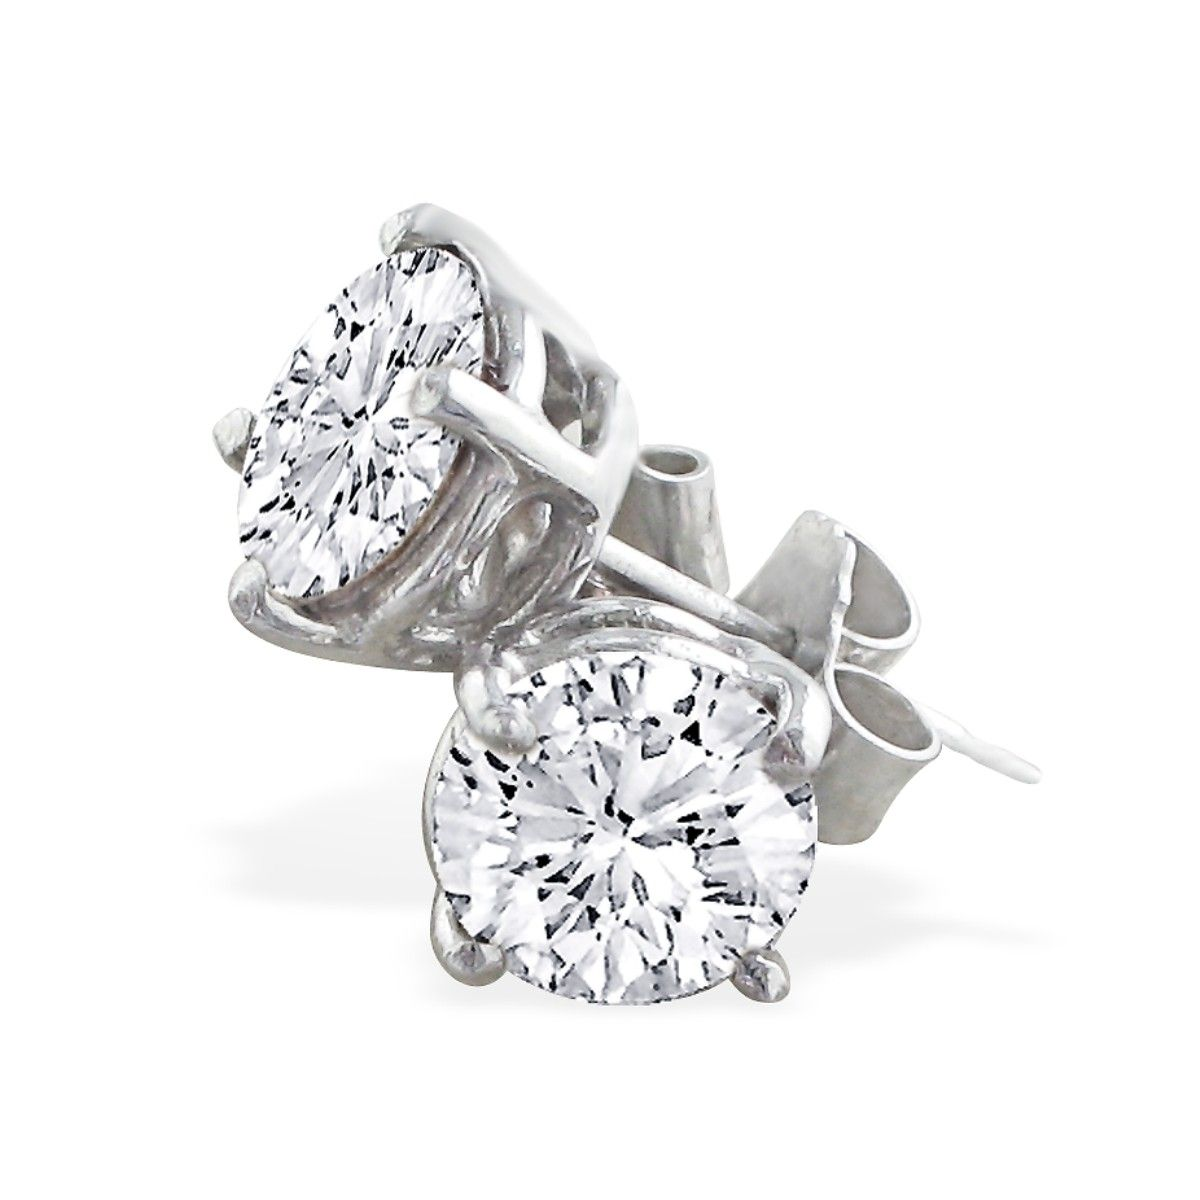 1 Carat Diamond Stud Earrings Set In Platinum, Screwbacks by SuperJeweler